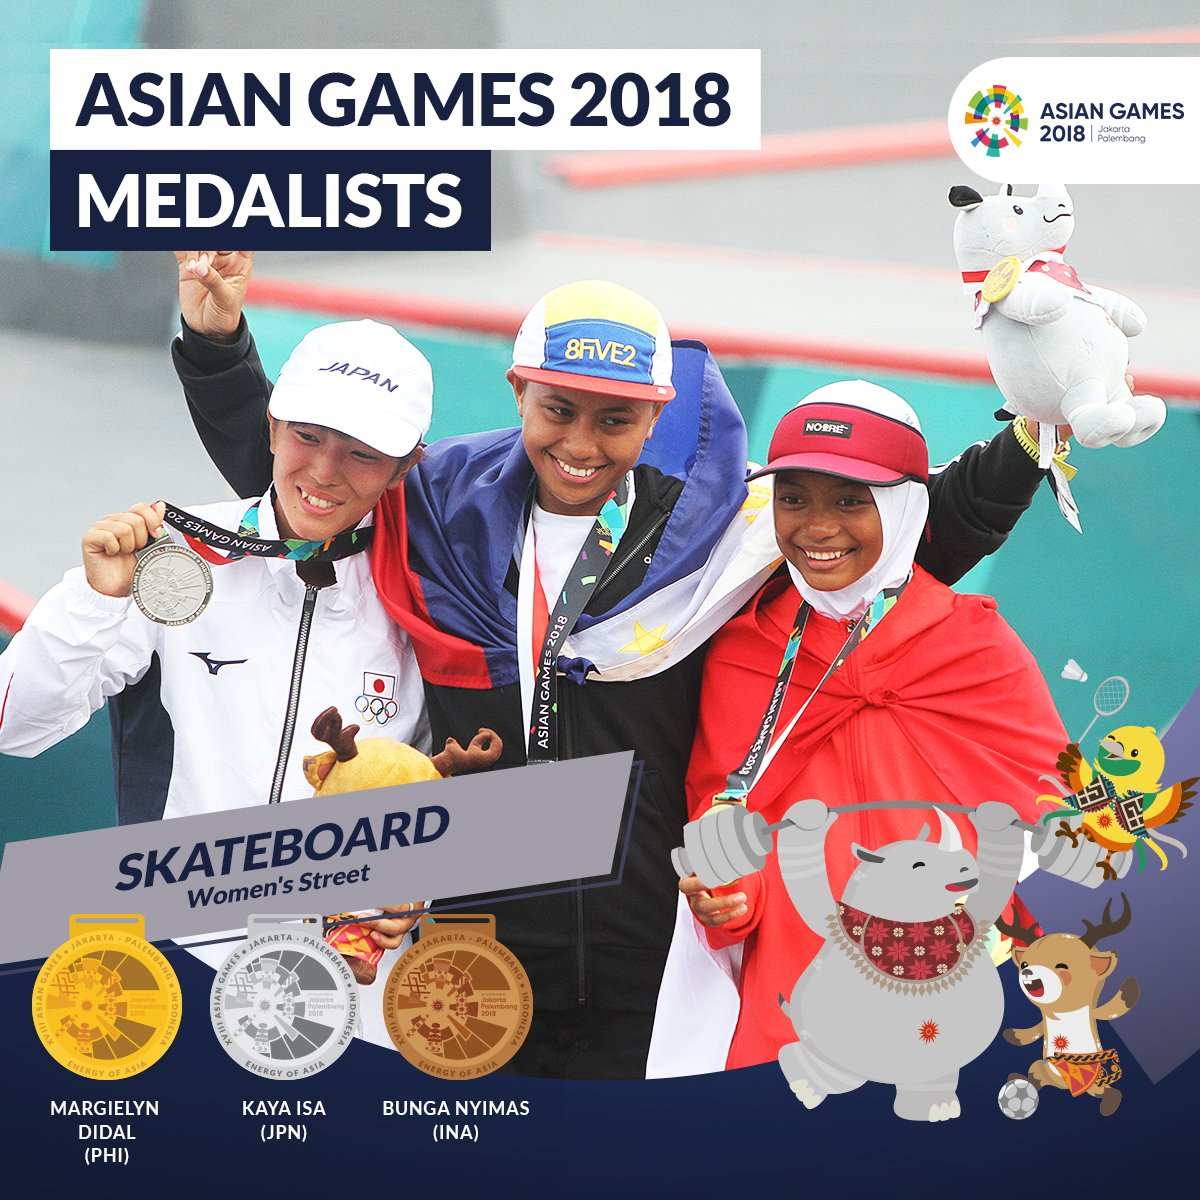 Asia Games 2018